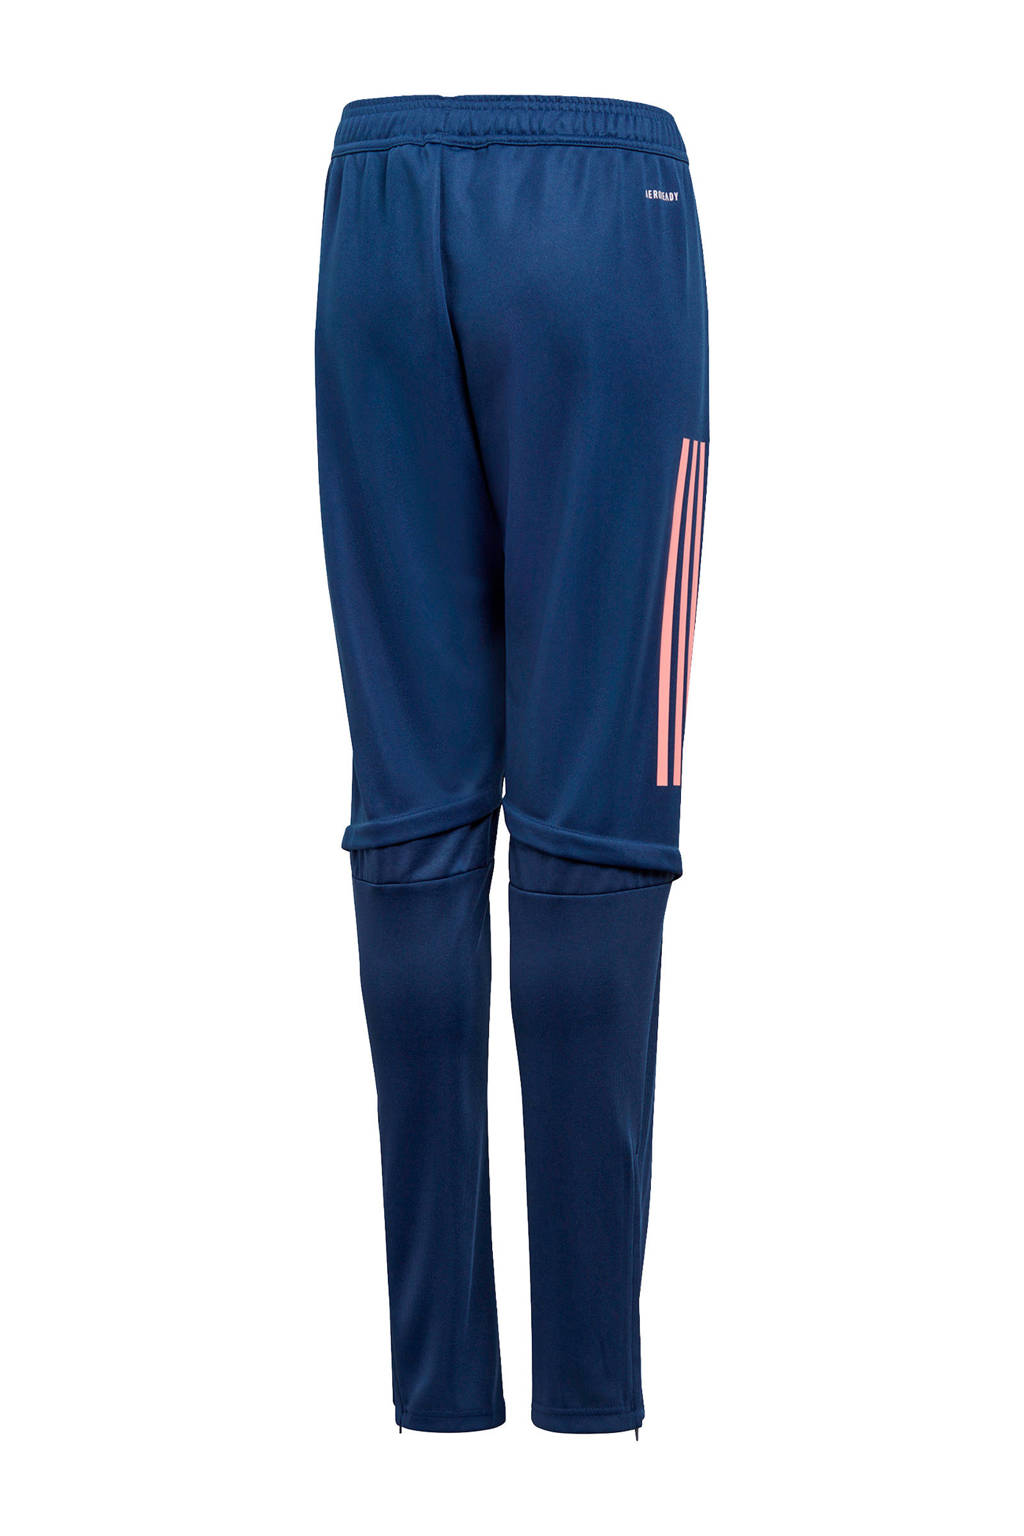 adidas Performance Senior Arsenal FC trainingsbroek donkerblauw, Donkerblauw